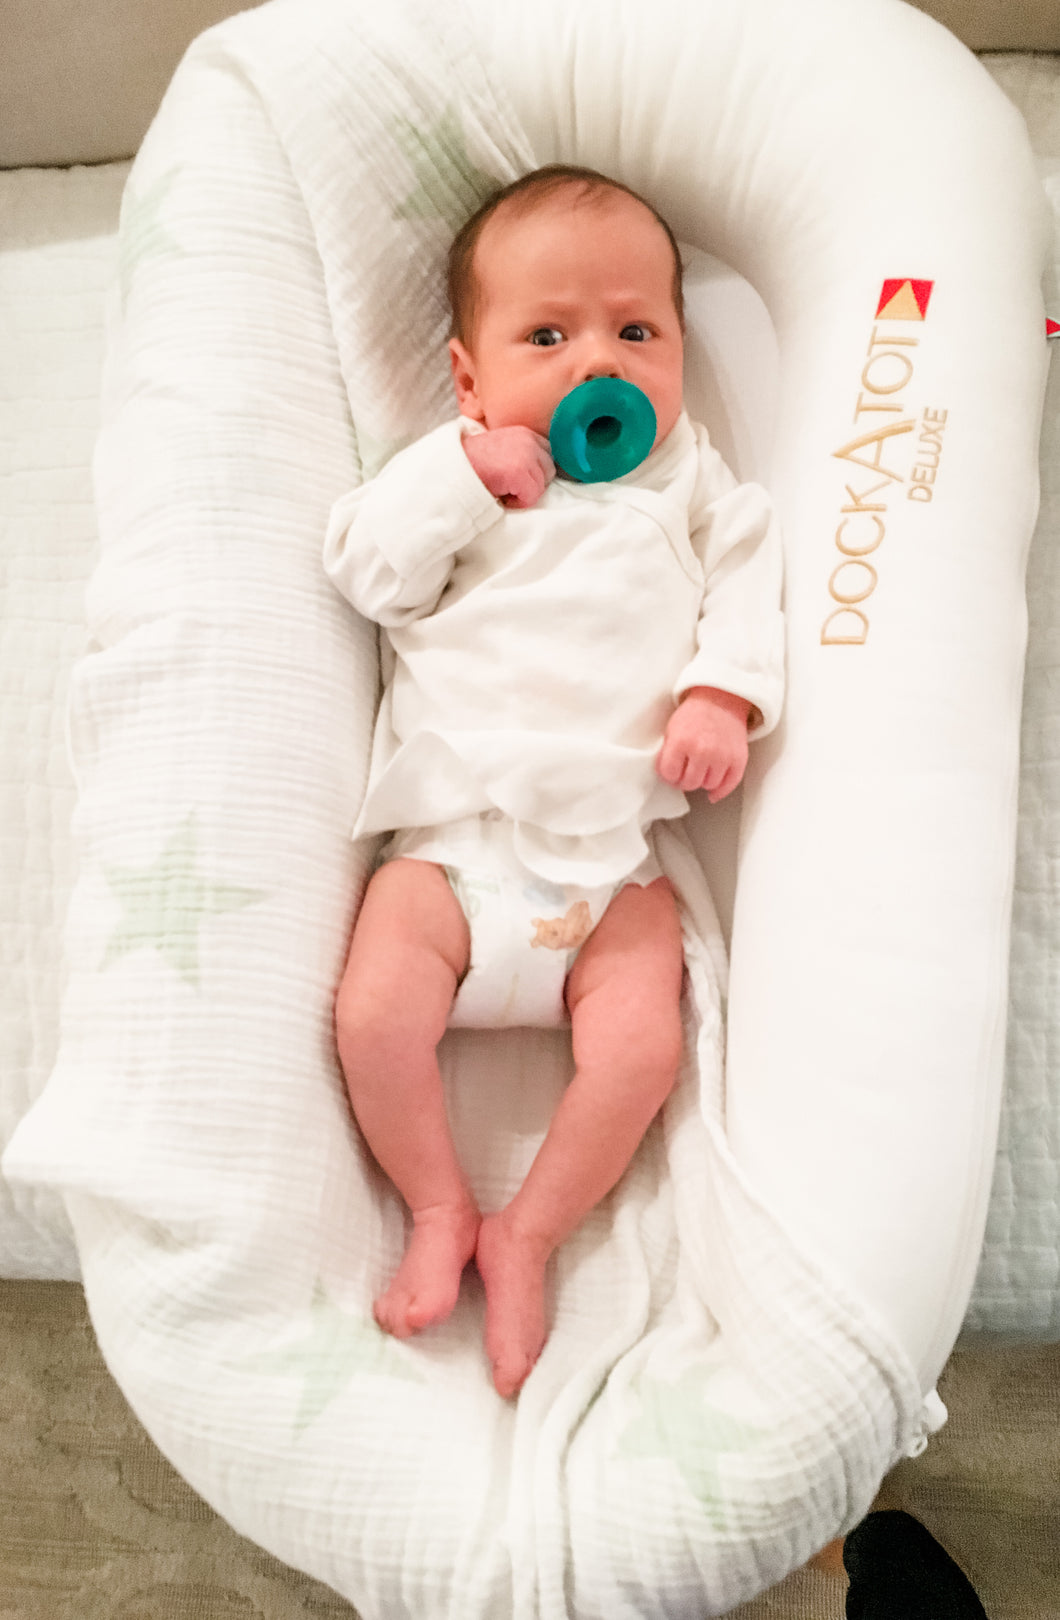 Baby with pacifier in DockATot Deluxe lounger